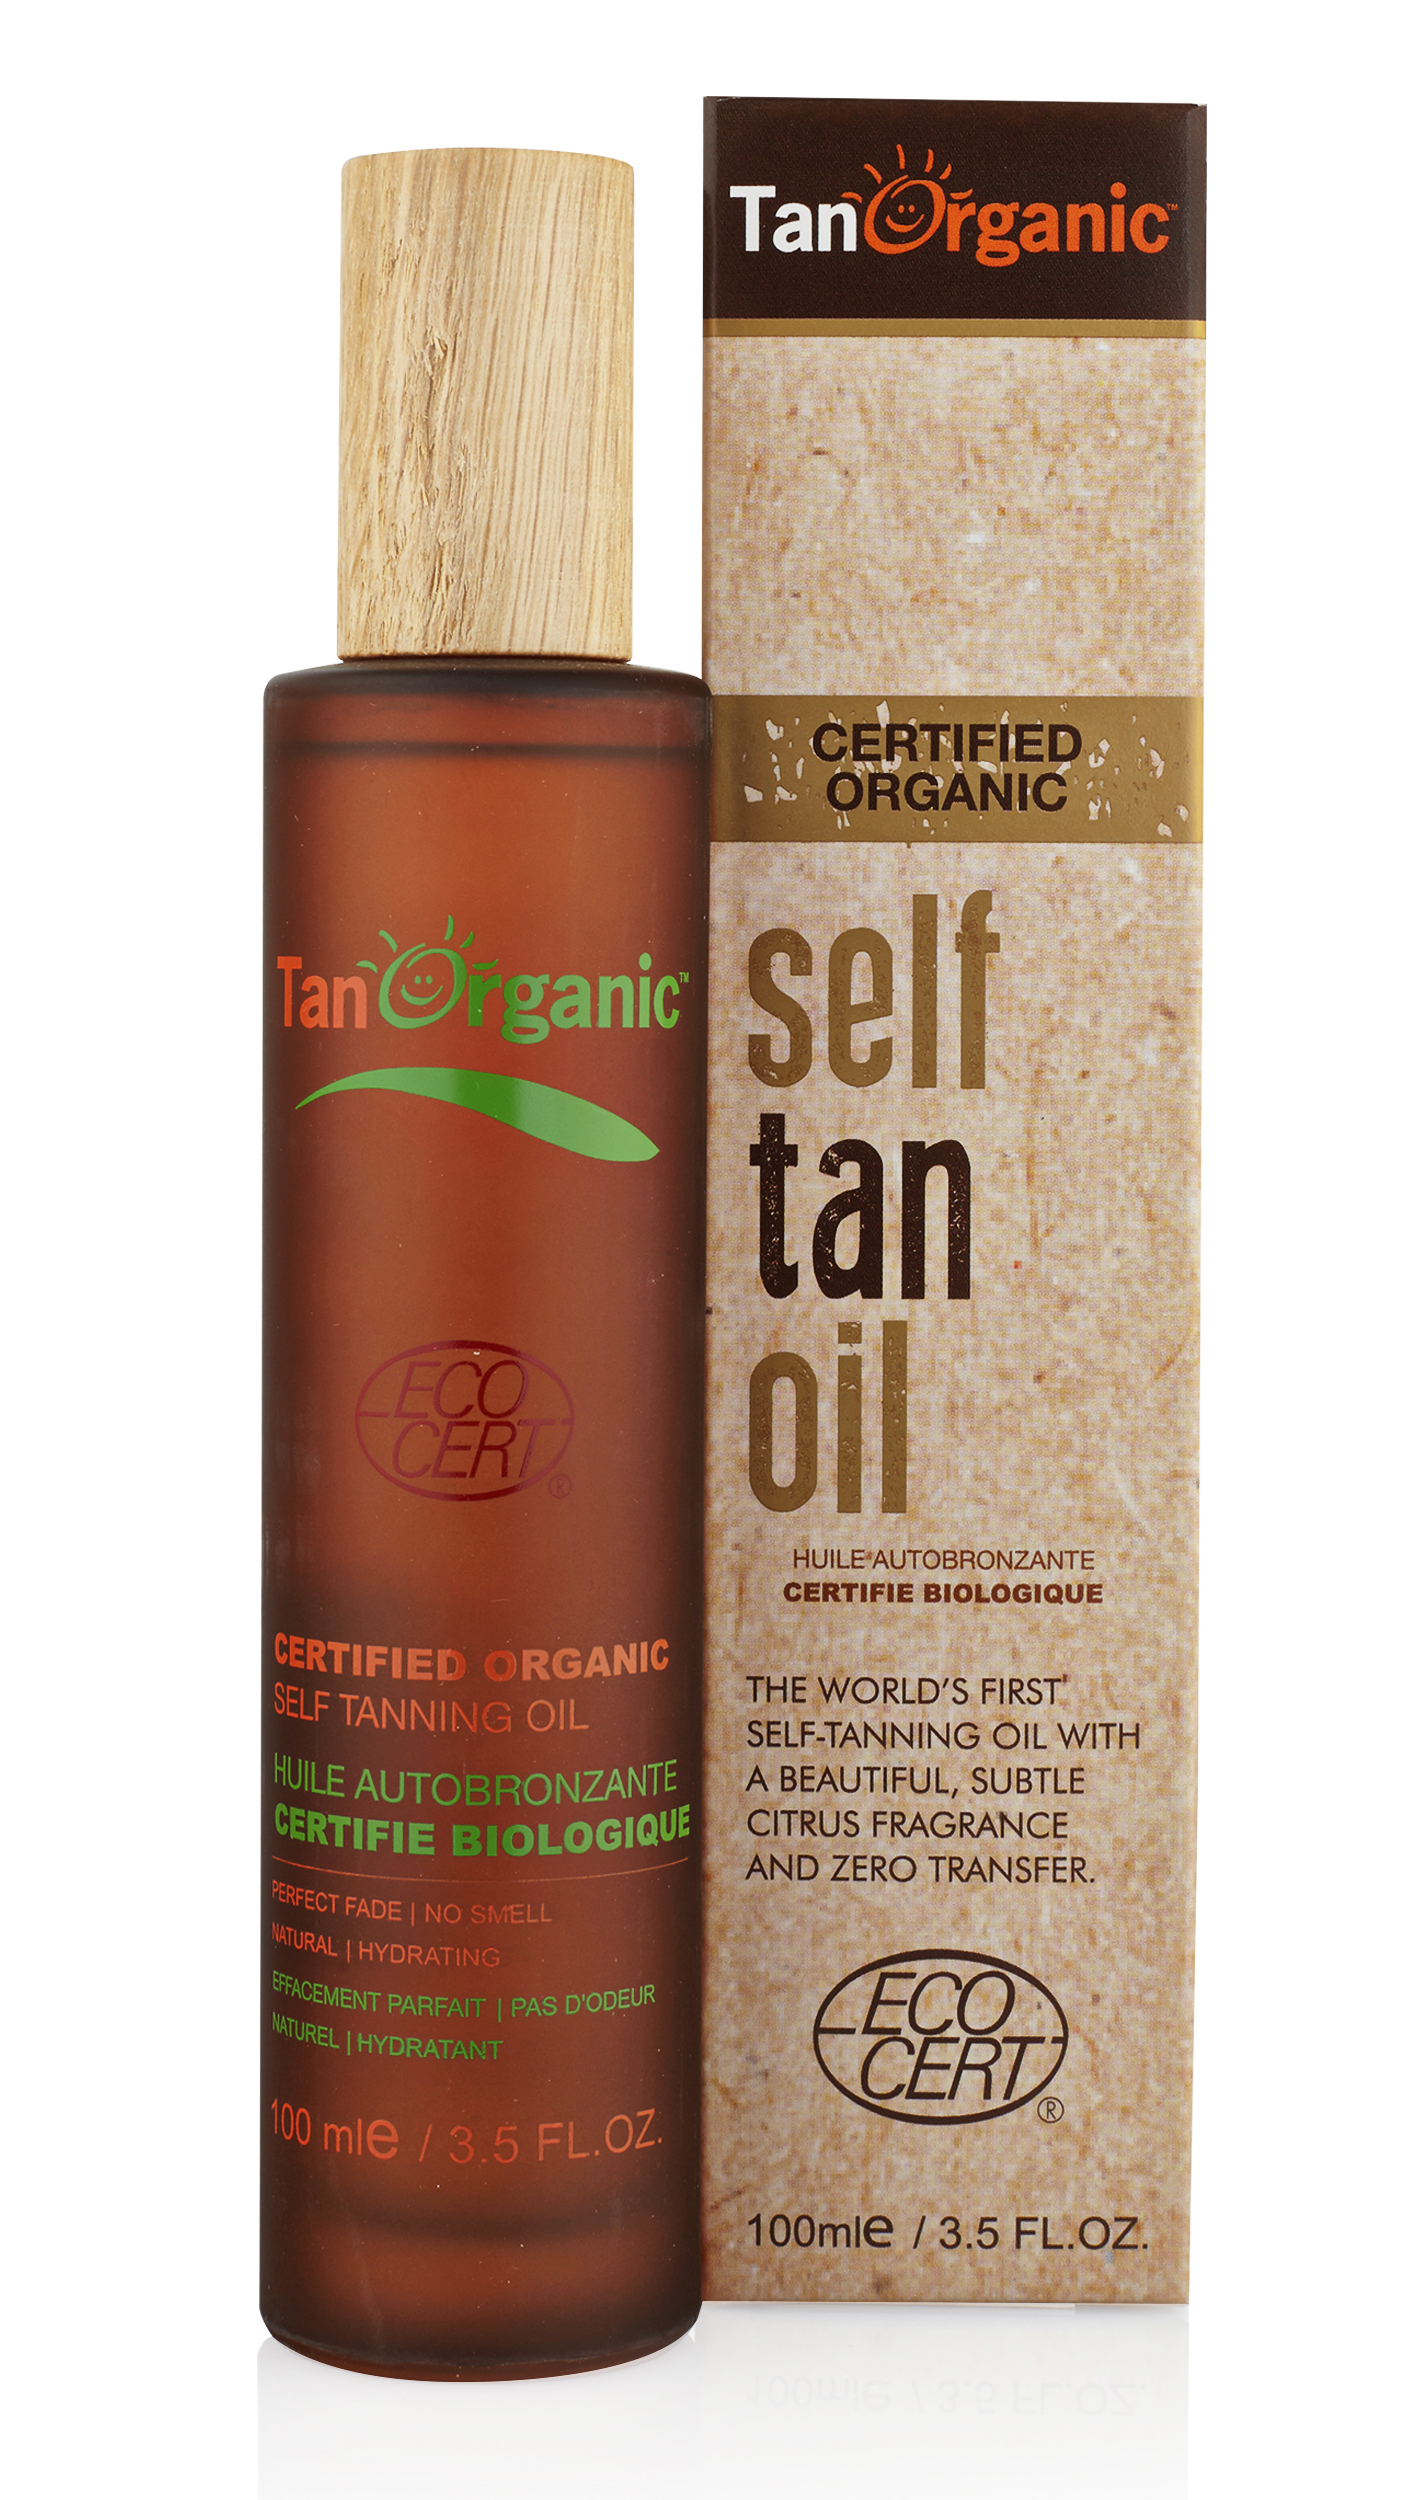 Self Tanning Oil by TanOrganic